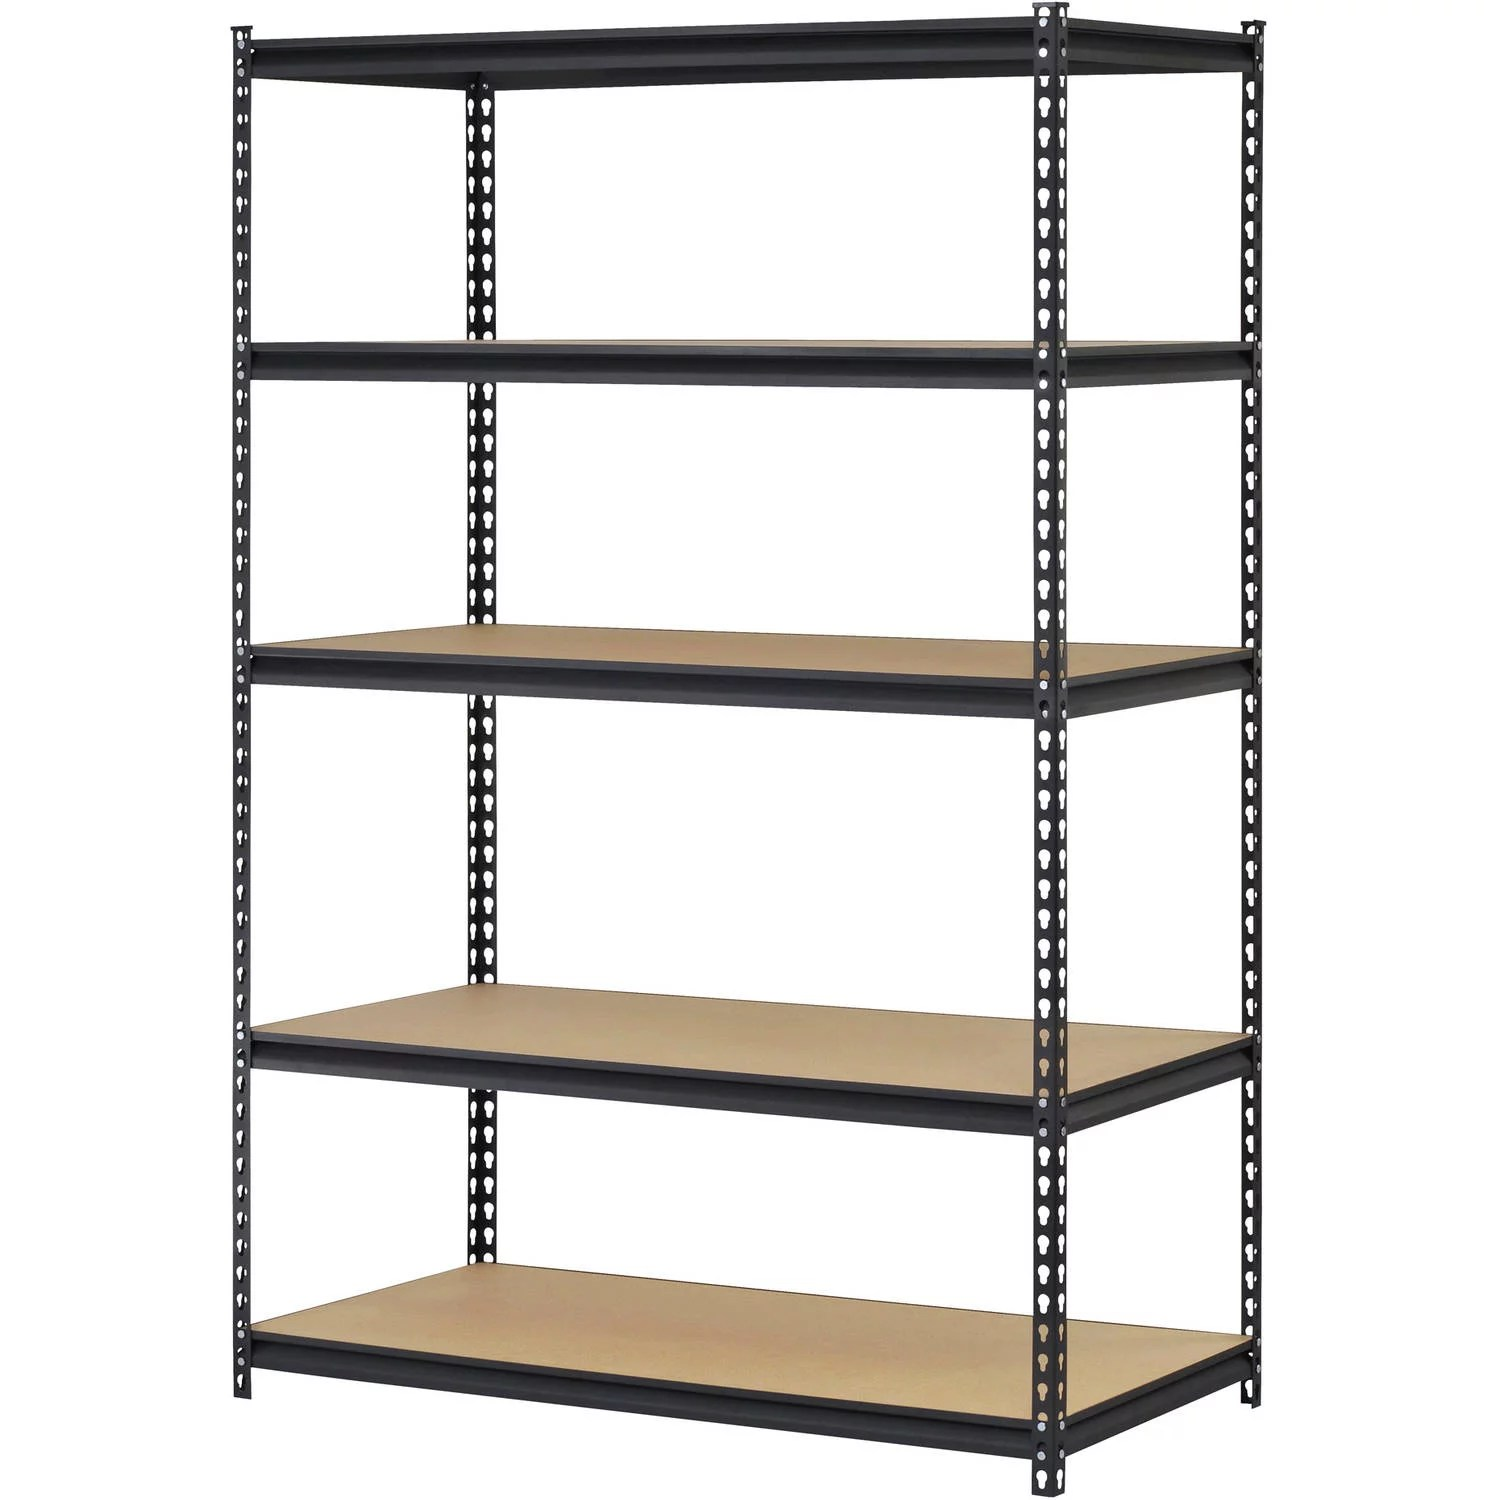 Storage Racks Plano 5 Shelf 36in X 18in X 73 75in Storage Shelving Organizer